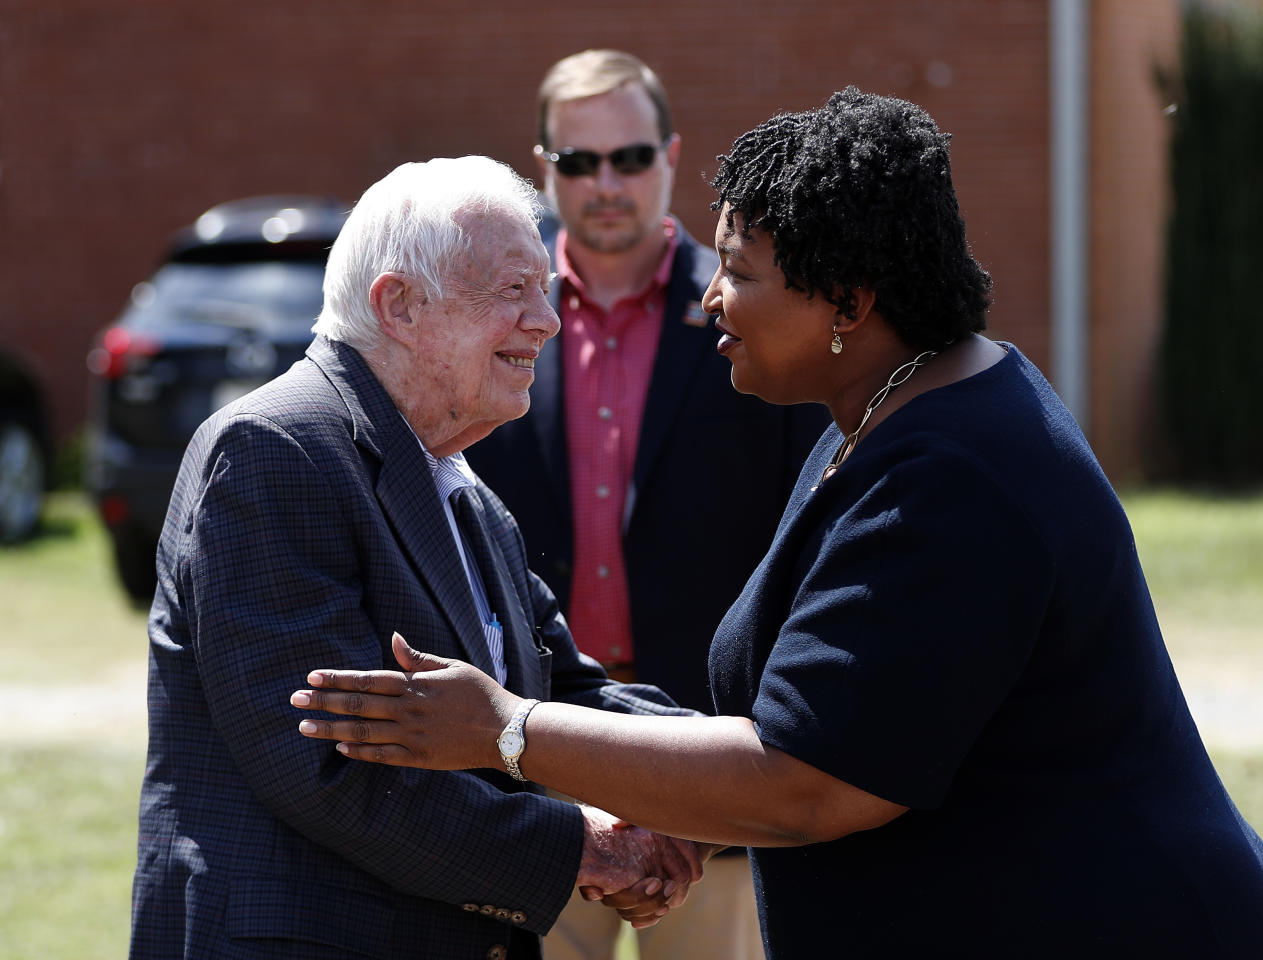 Former President Jimmy Carter greets Democratic gubernatorial candidate Stacey Abrams as she arrives for during a news conference to announce her rural health care plan Tuesday, Sept. 18, 2018, in Plains, Ga. (AP Photo/John Bazemore)